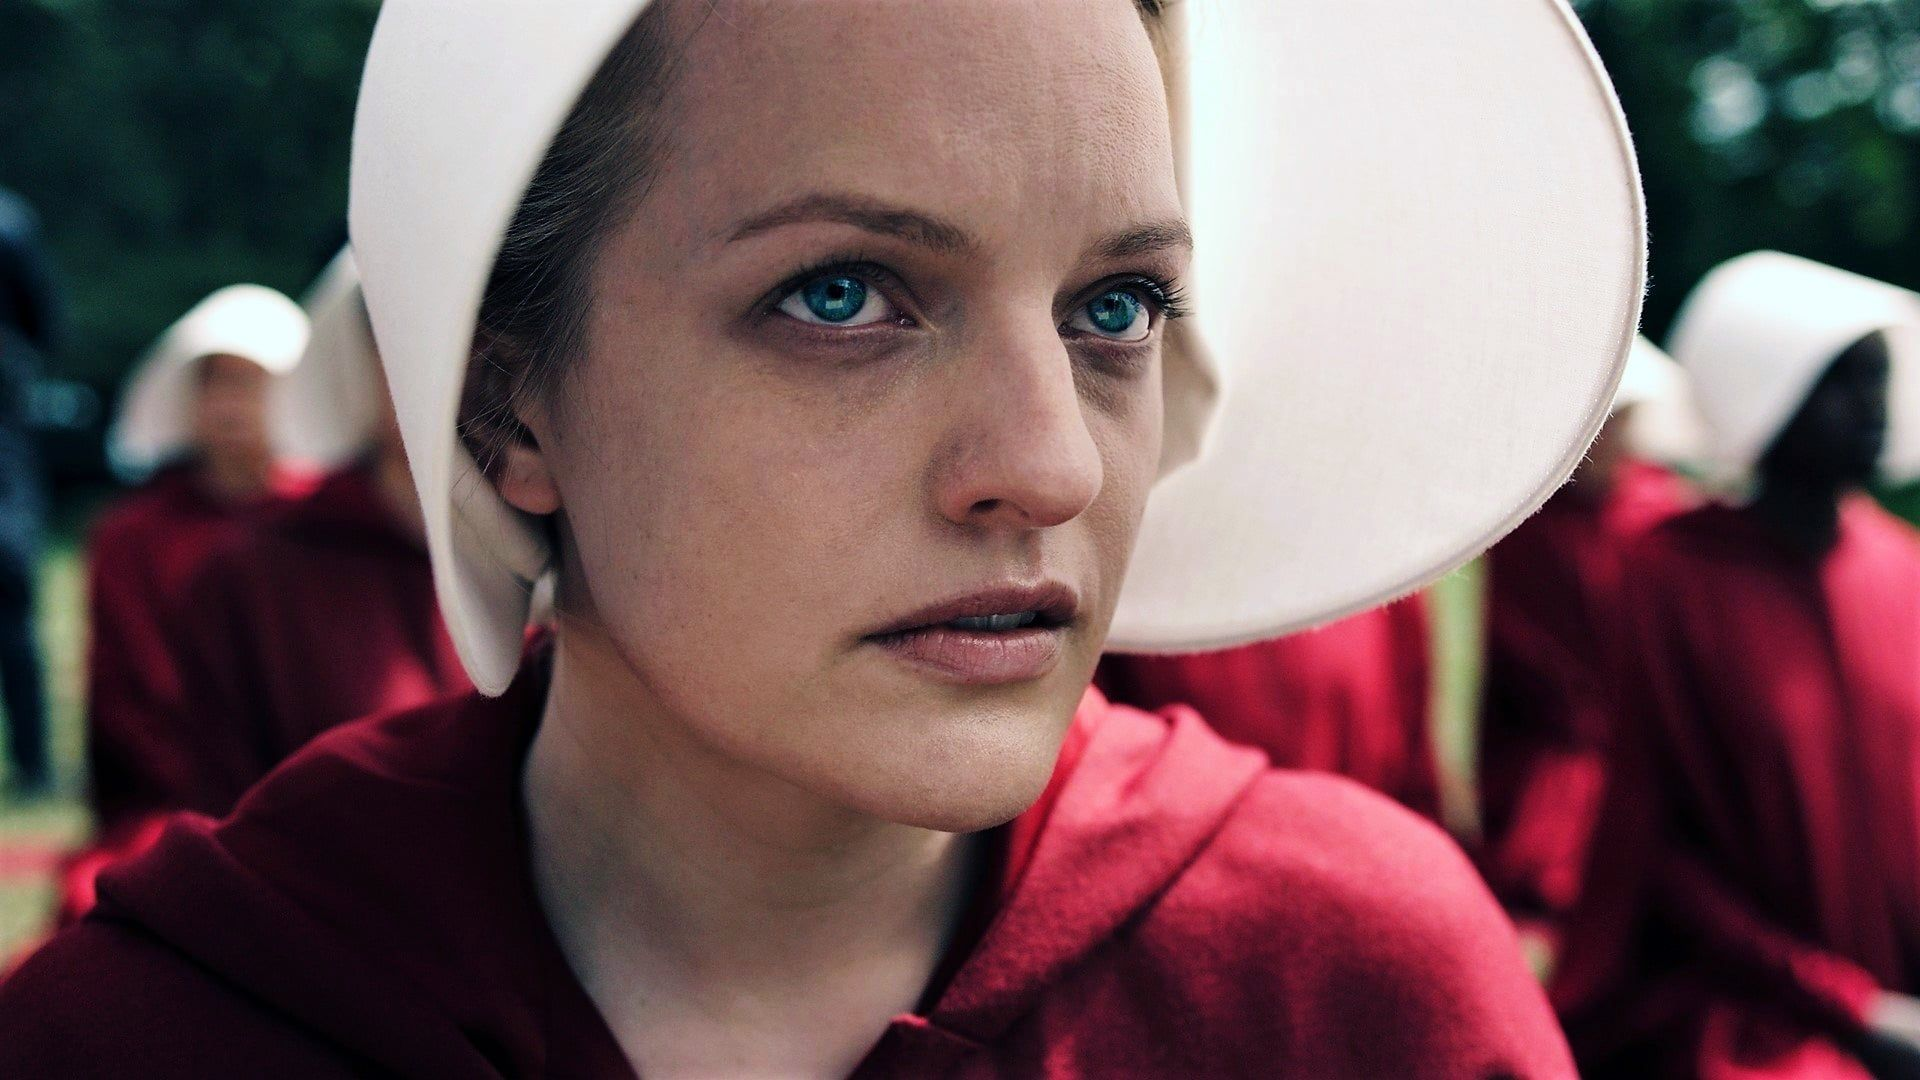 Watch The Handmaid's Tale 2017 online free YIFY YTS